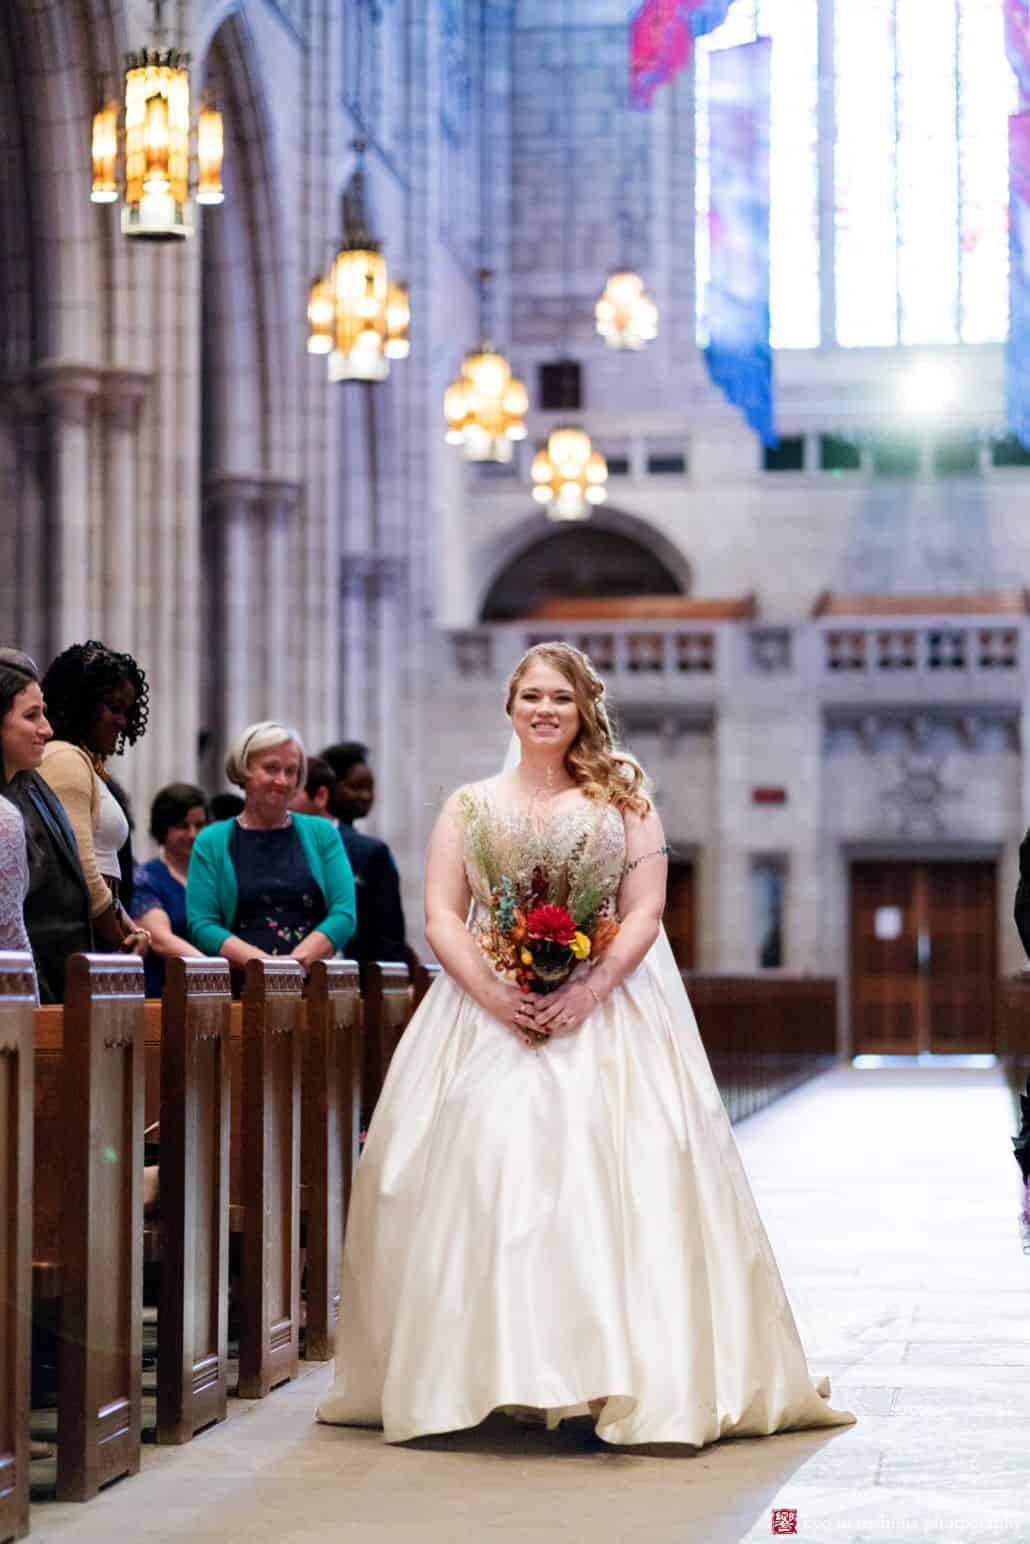 Bride walks down the aisle at Princeton University chapel wearing dress by Christina Wu with fall themed wedding bouquet